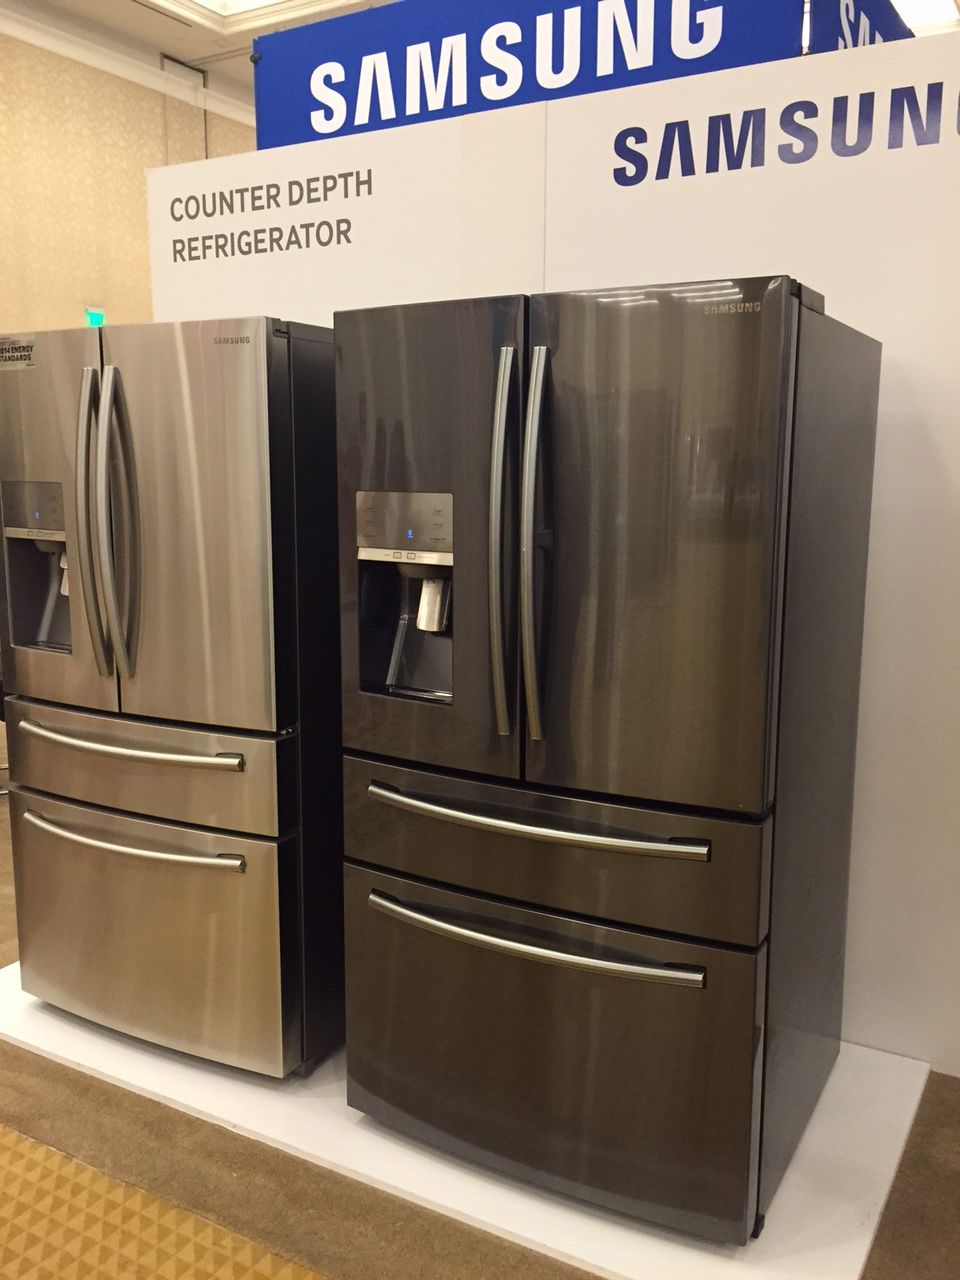 Uncategorized Samsung Kitchen Appliances Reviews whats the next big trend for kitchen appliances after stainless steel ends